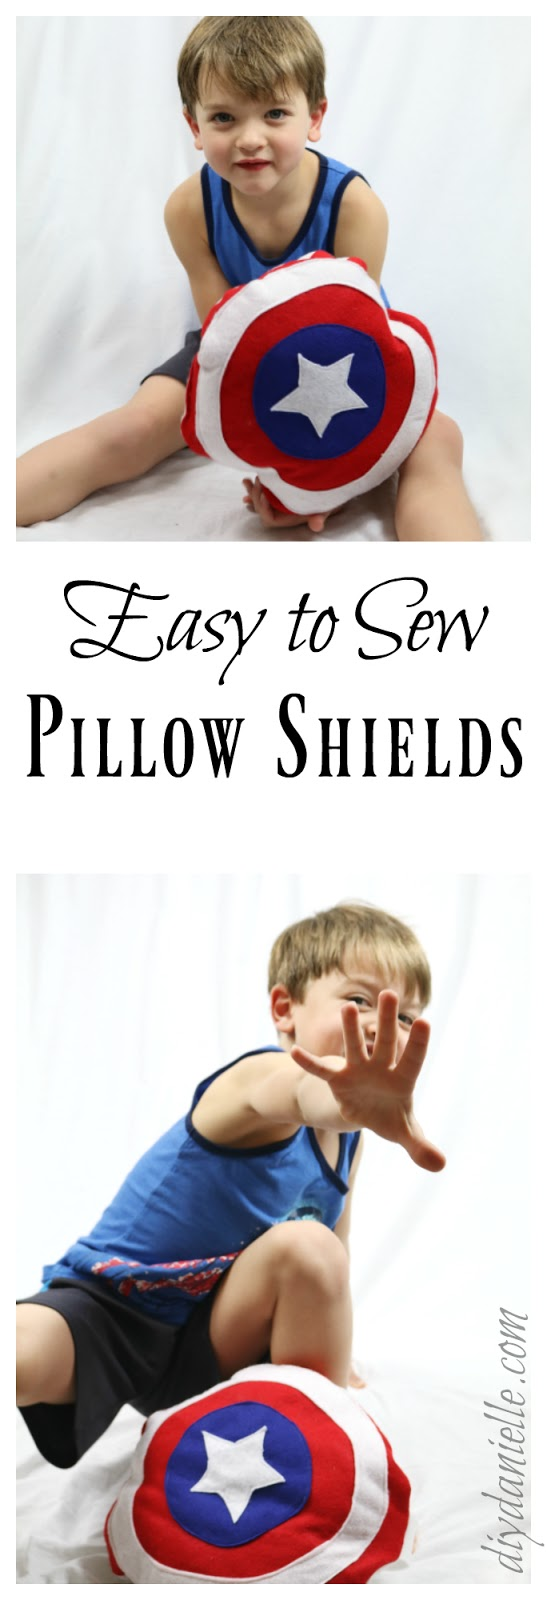 DIY Pillow Shields